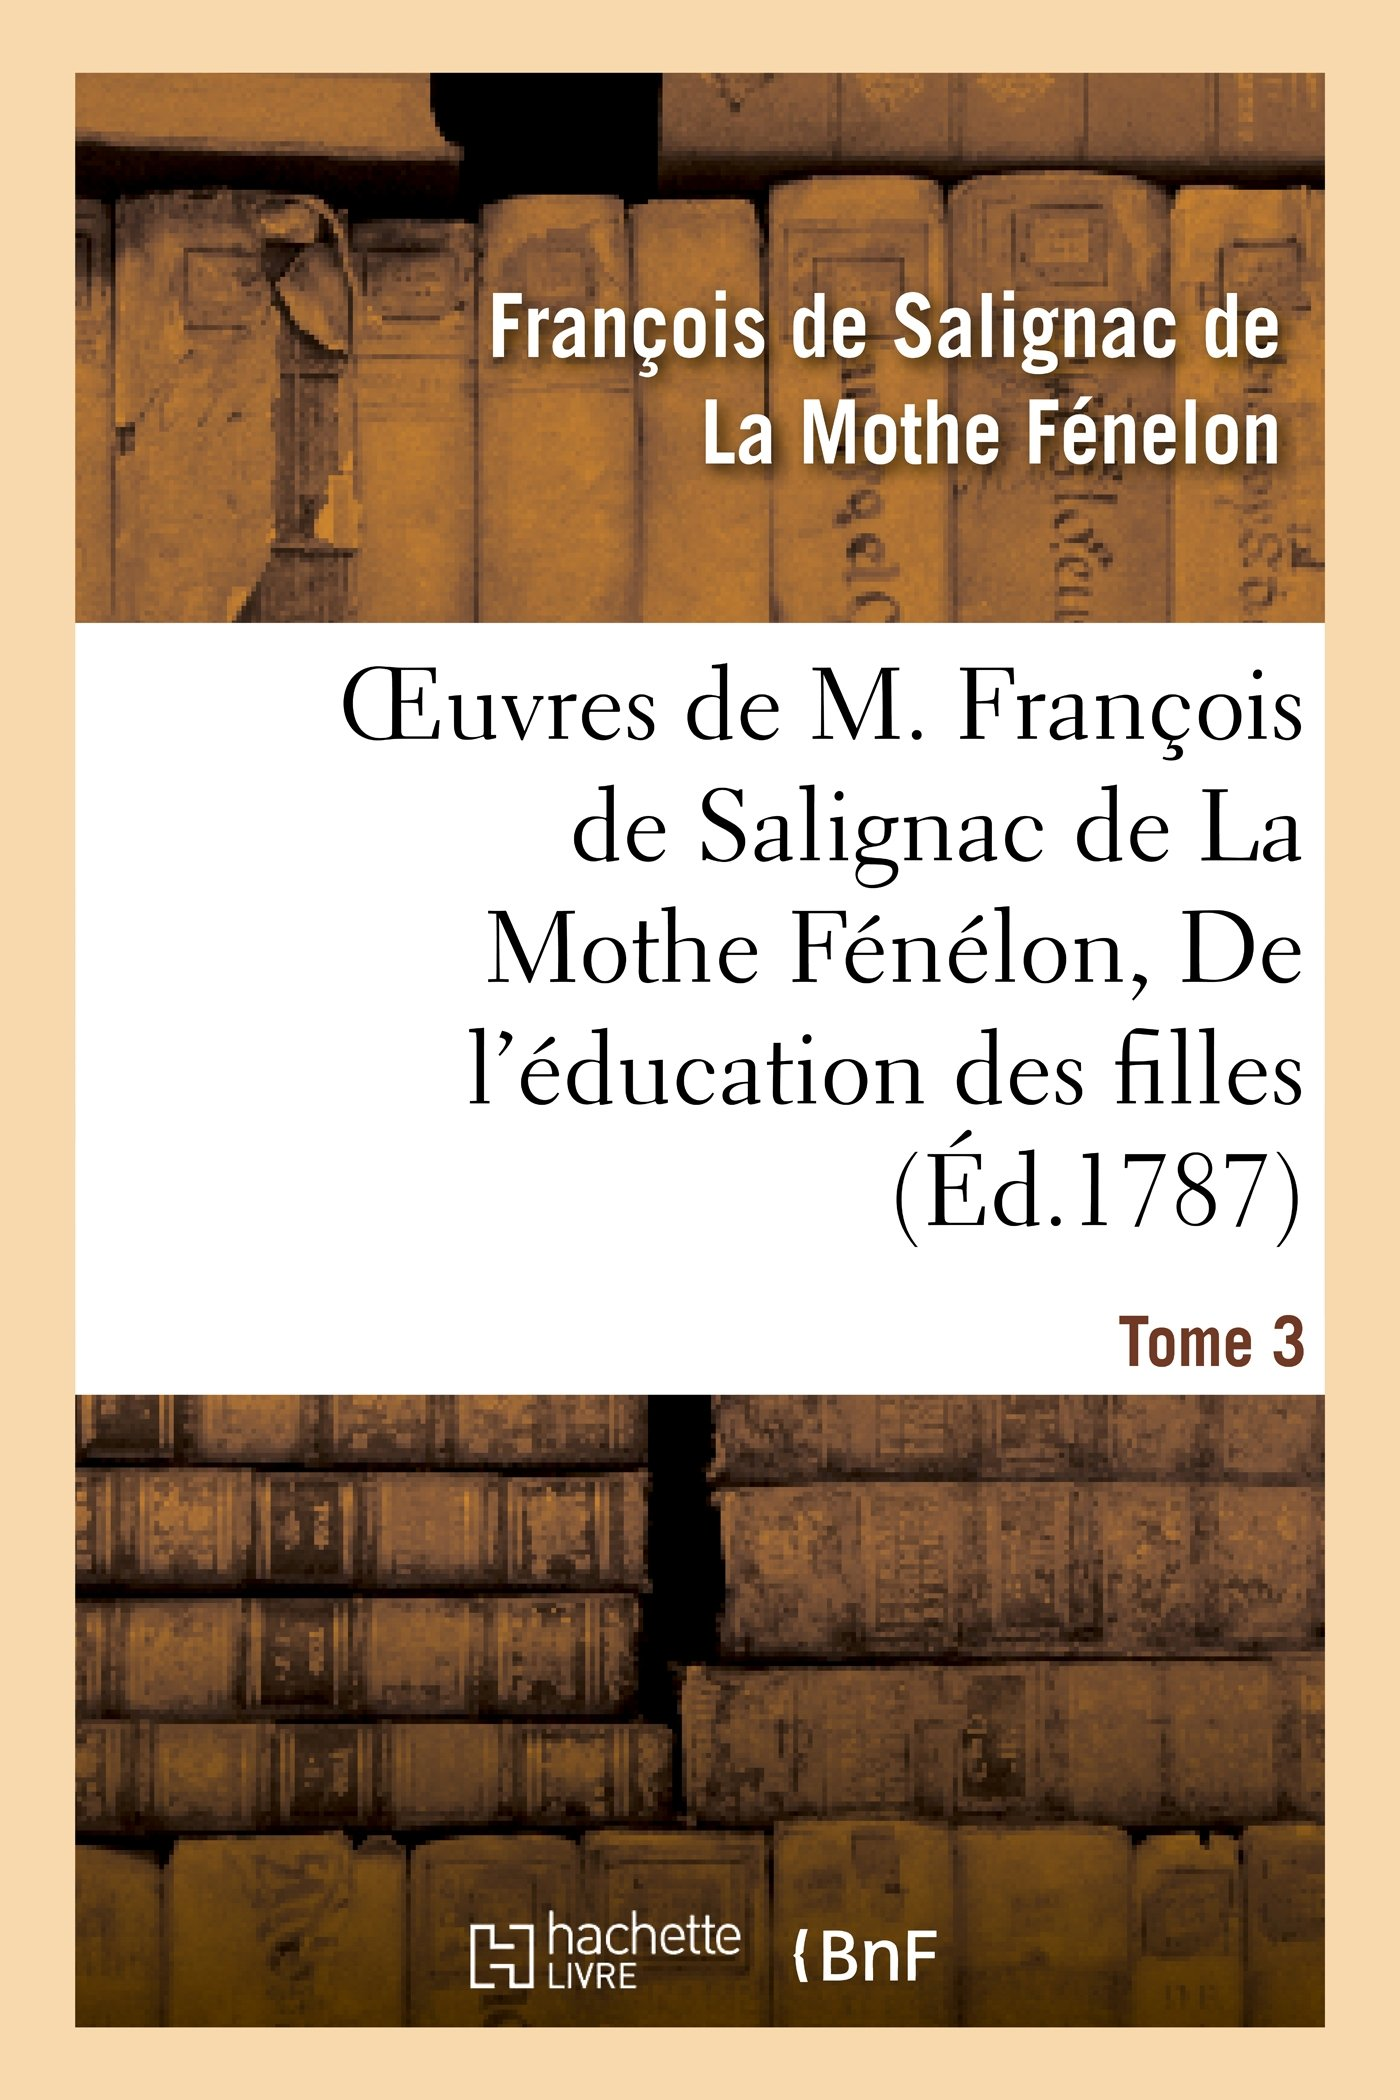 Oeuvres de M. Francois de Salignac de La Mothe Fenelon, Tome 3. de L'Education Des Filles (Litterature) (French Edition) ebook